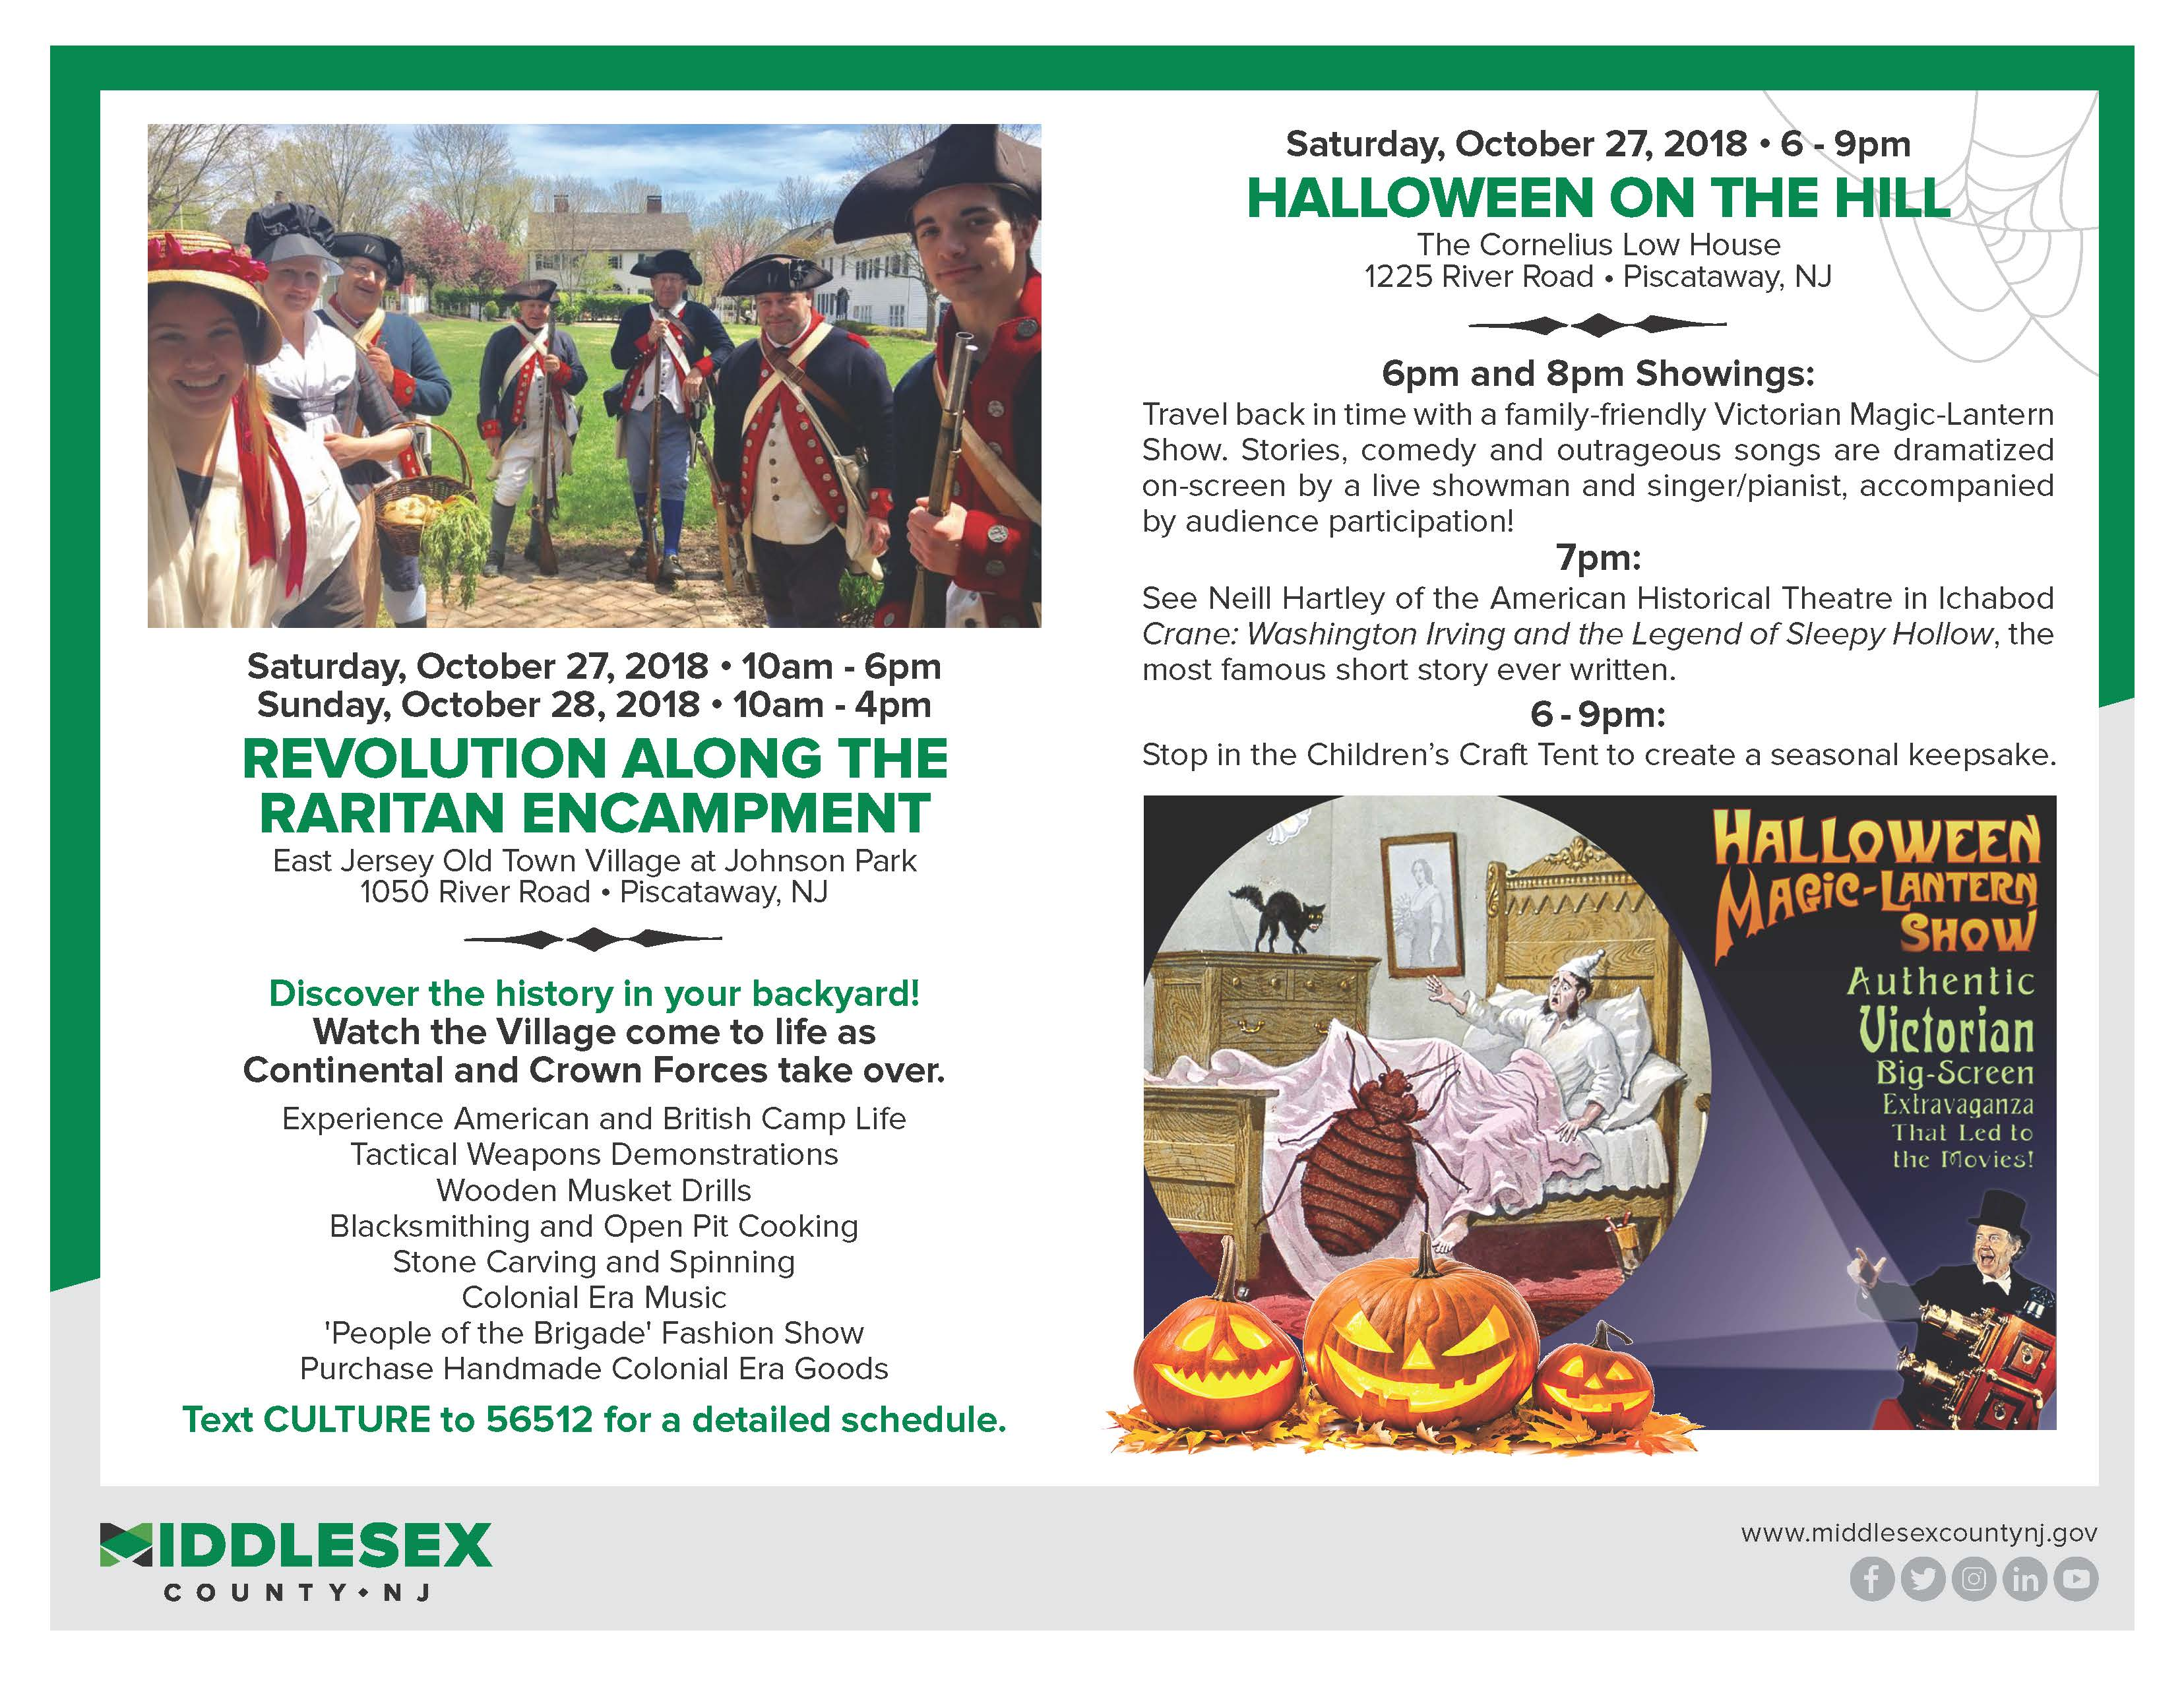 Revolution-Along-the-Raritan-and-Halloween-on-the-Hill-mailer_Page_2